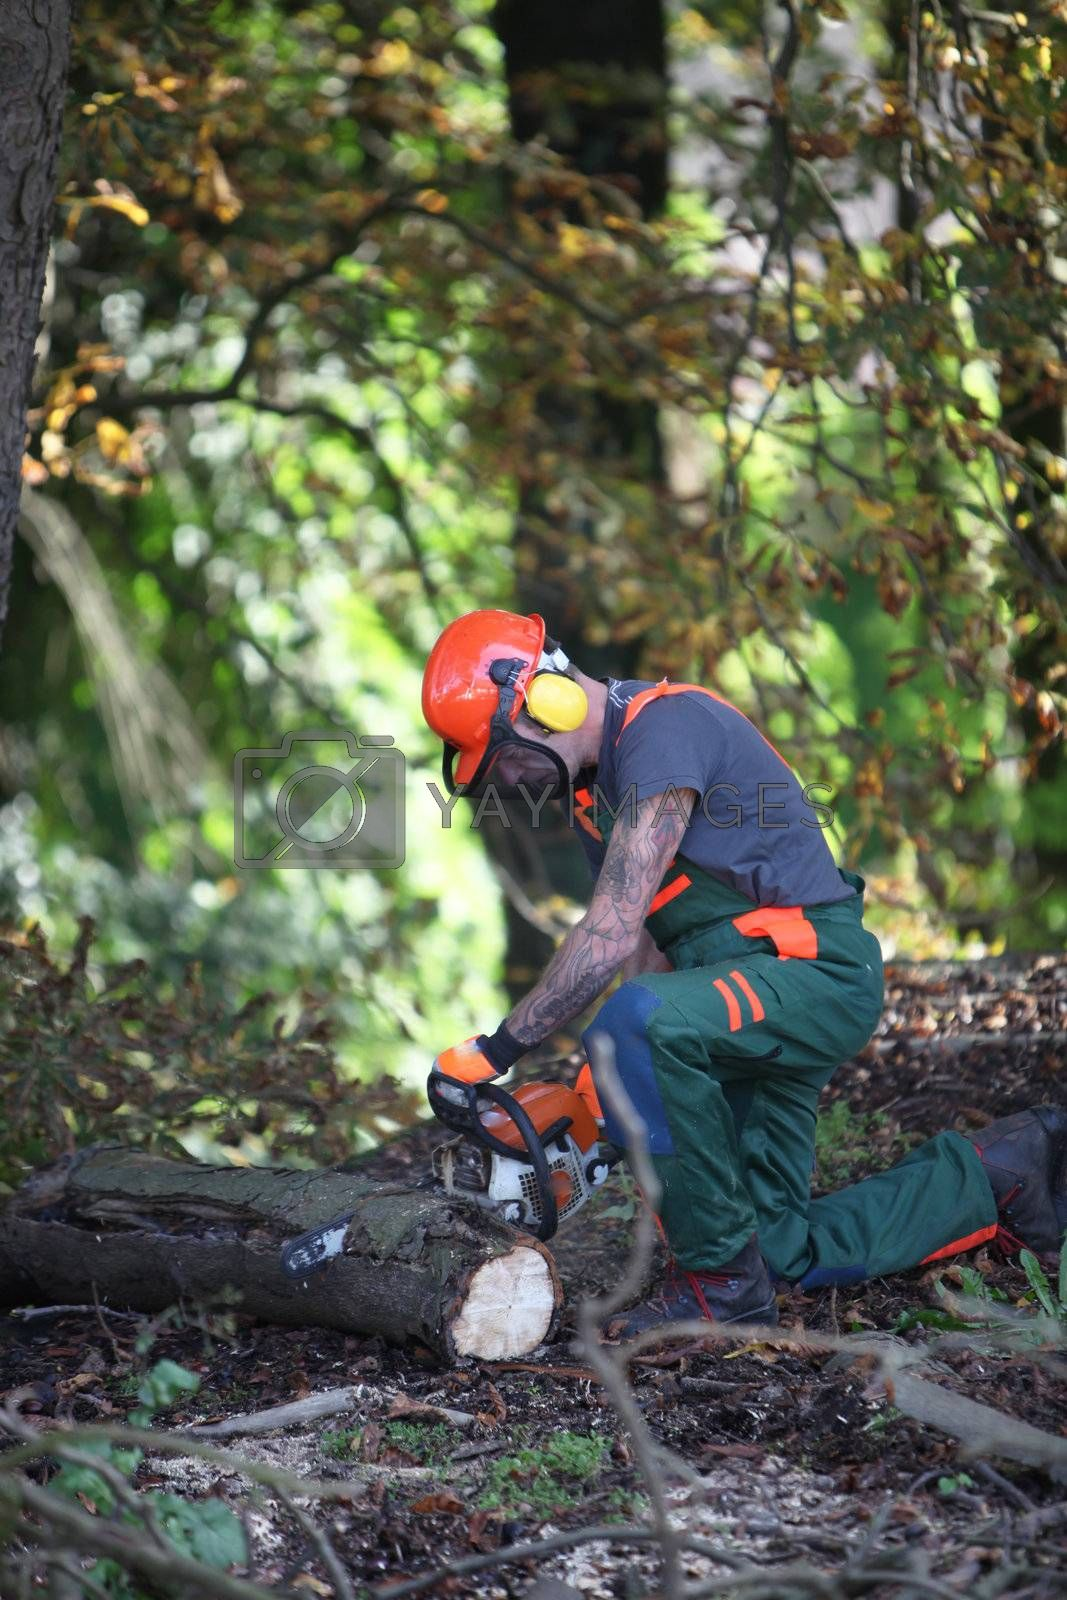 A forestry worker sawing a tree trunk. He is wearing protective clothing